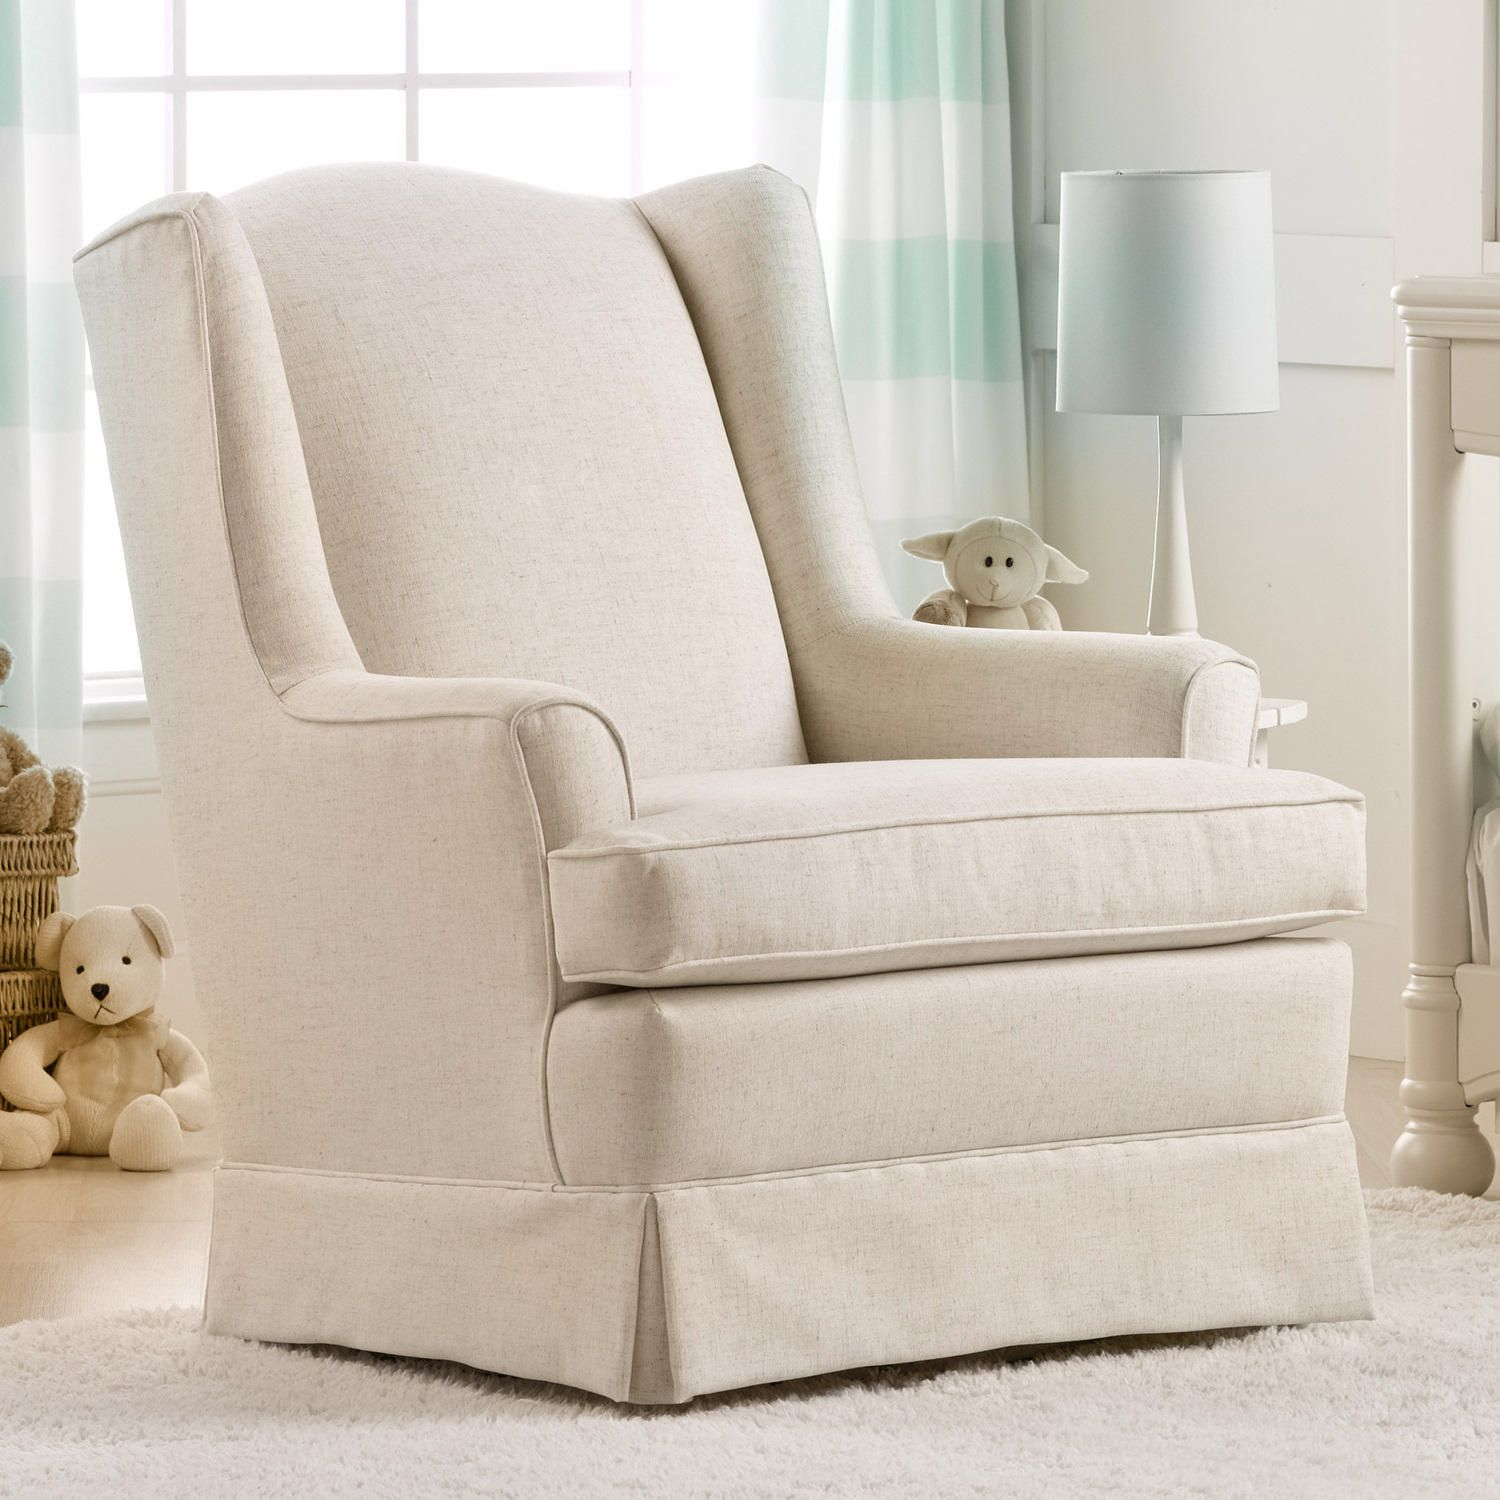 Best Chairs Sutton Upholstered Swivel Glider